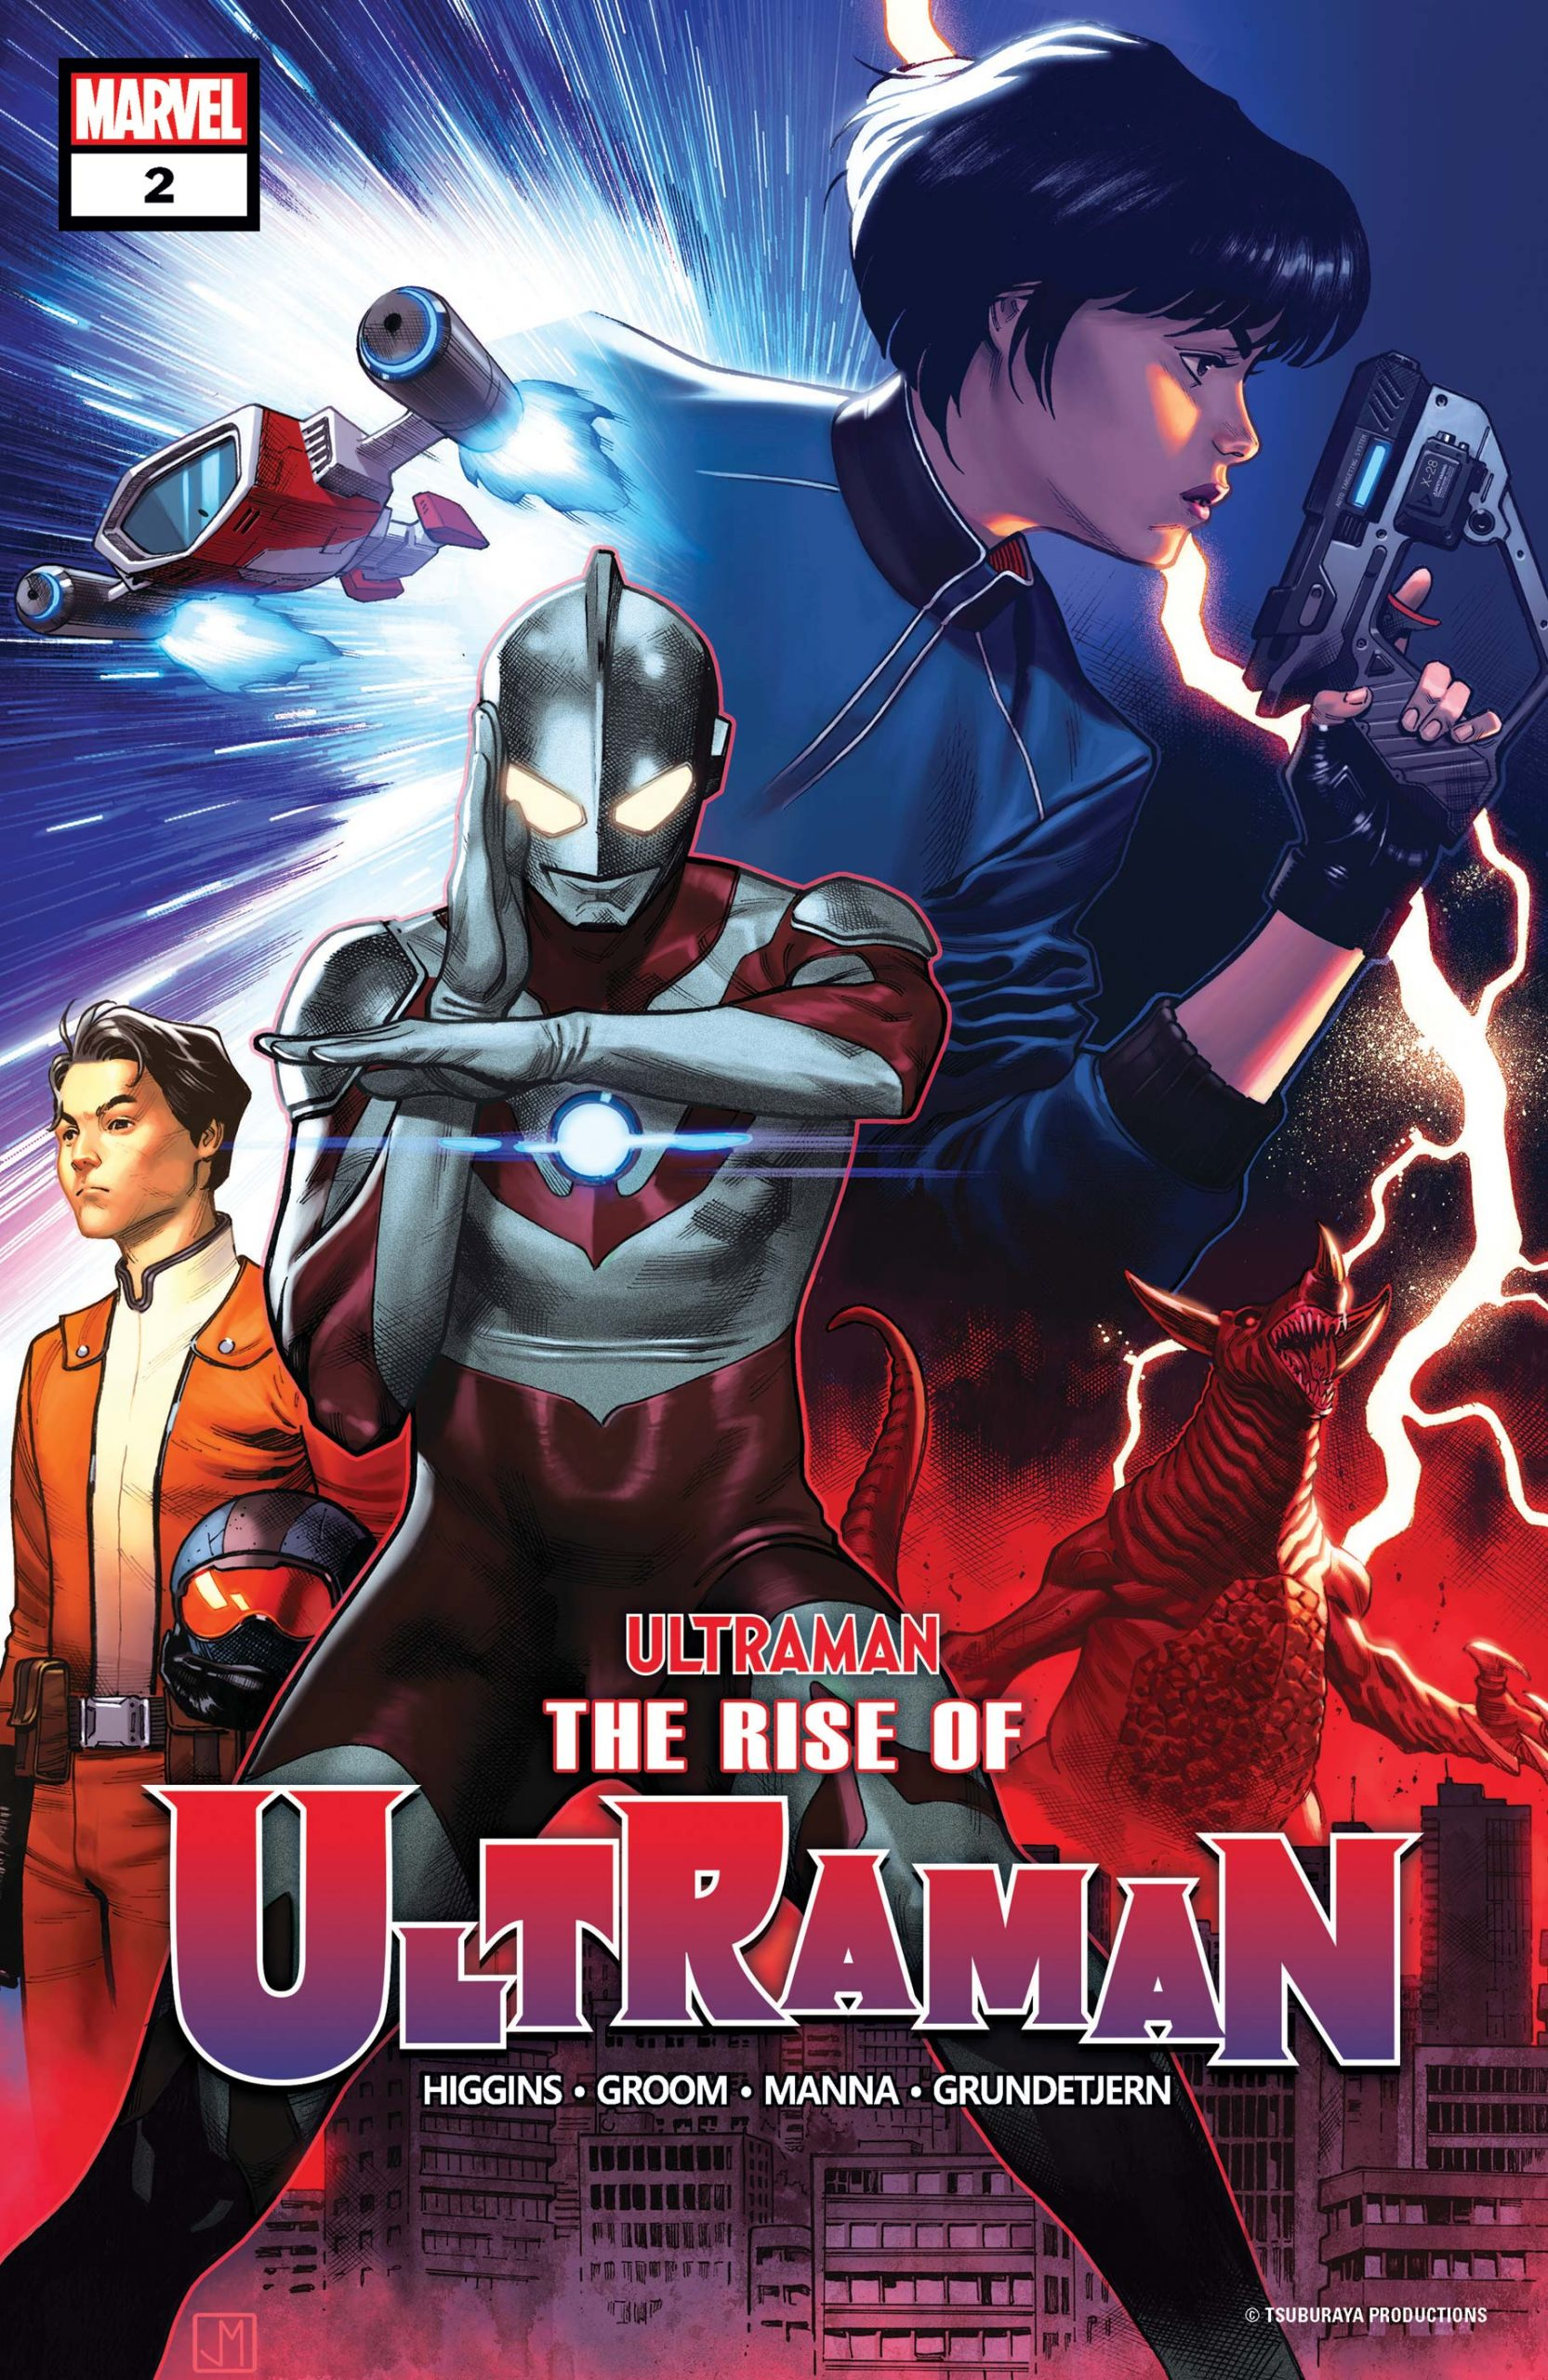 Cover Art for The Rise of Ultraman